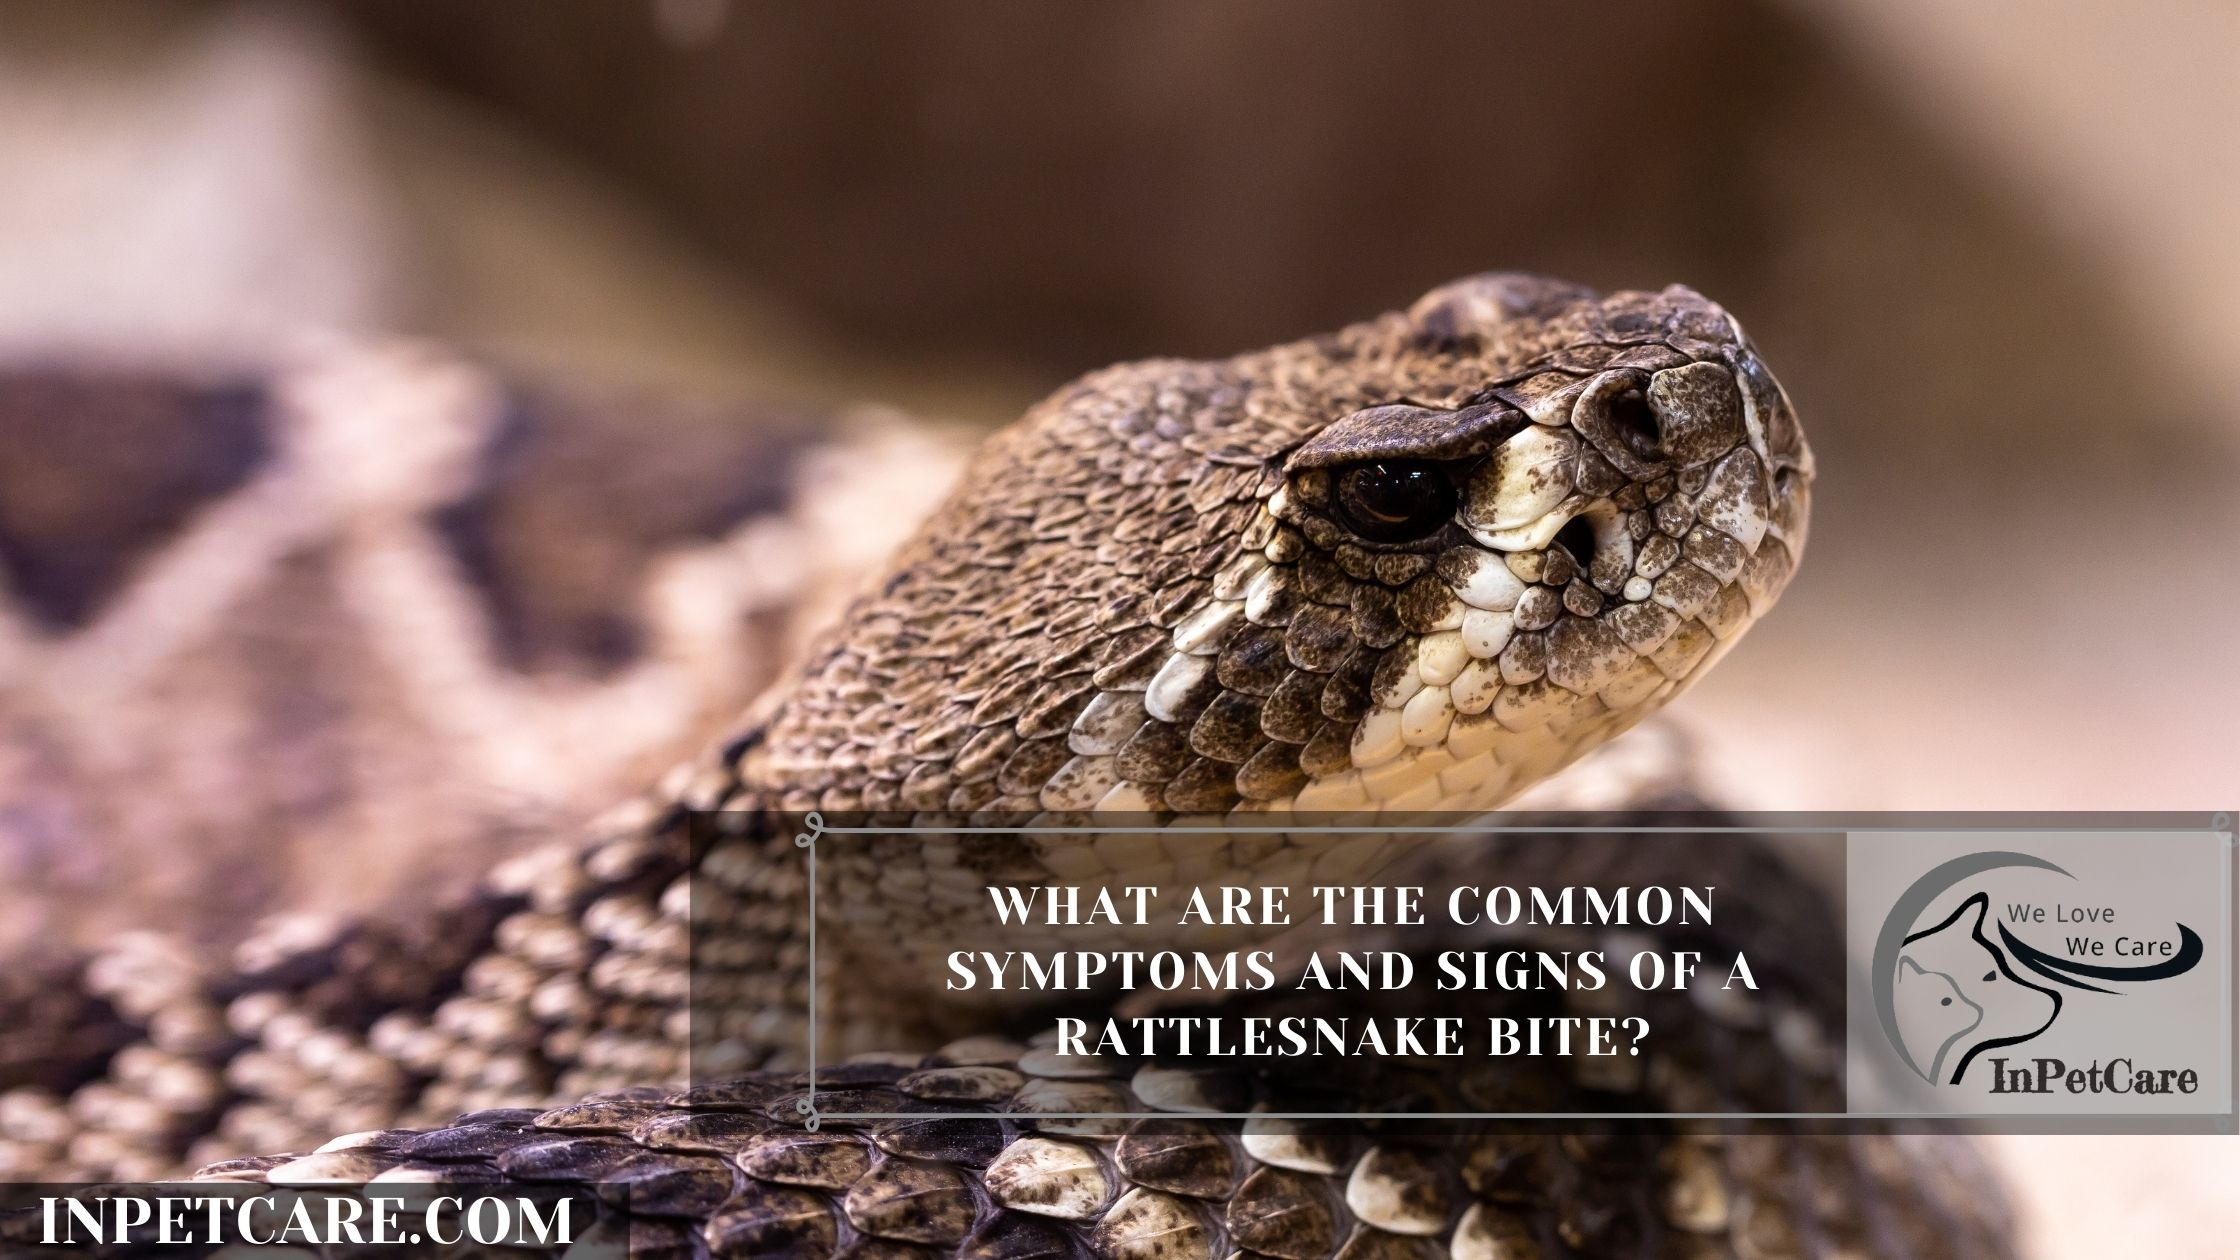 What are the common Symptoms and Signs of a Rattlesnake bite?